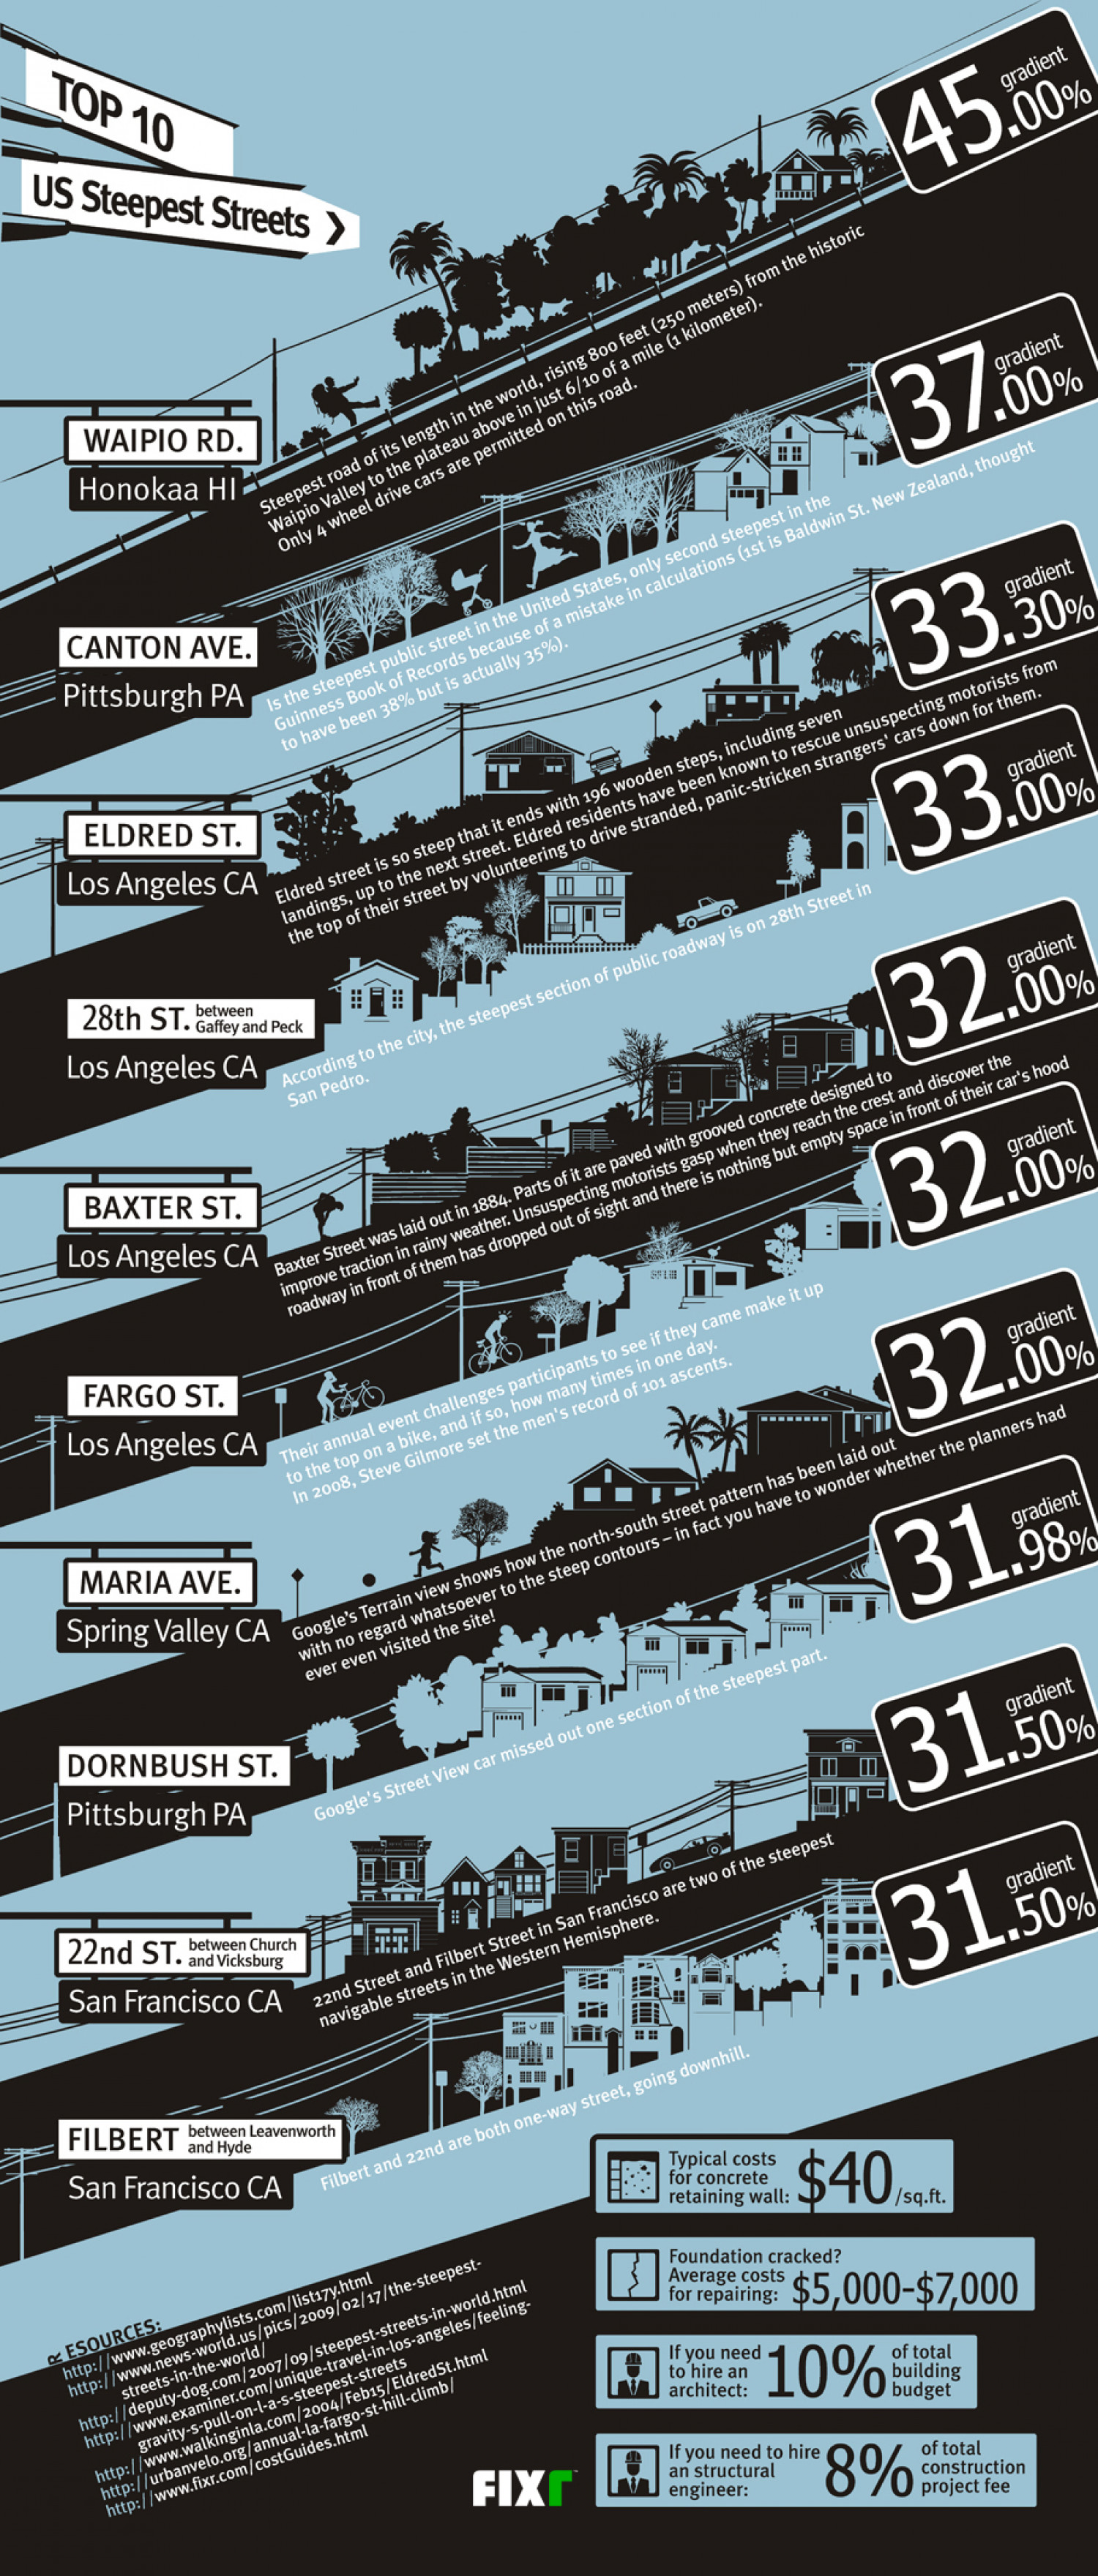 Top 10 U.S. Steepest Streets Infographic